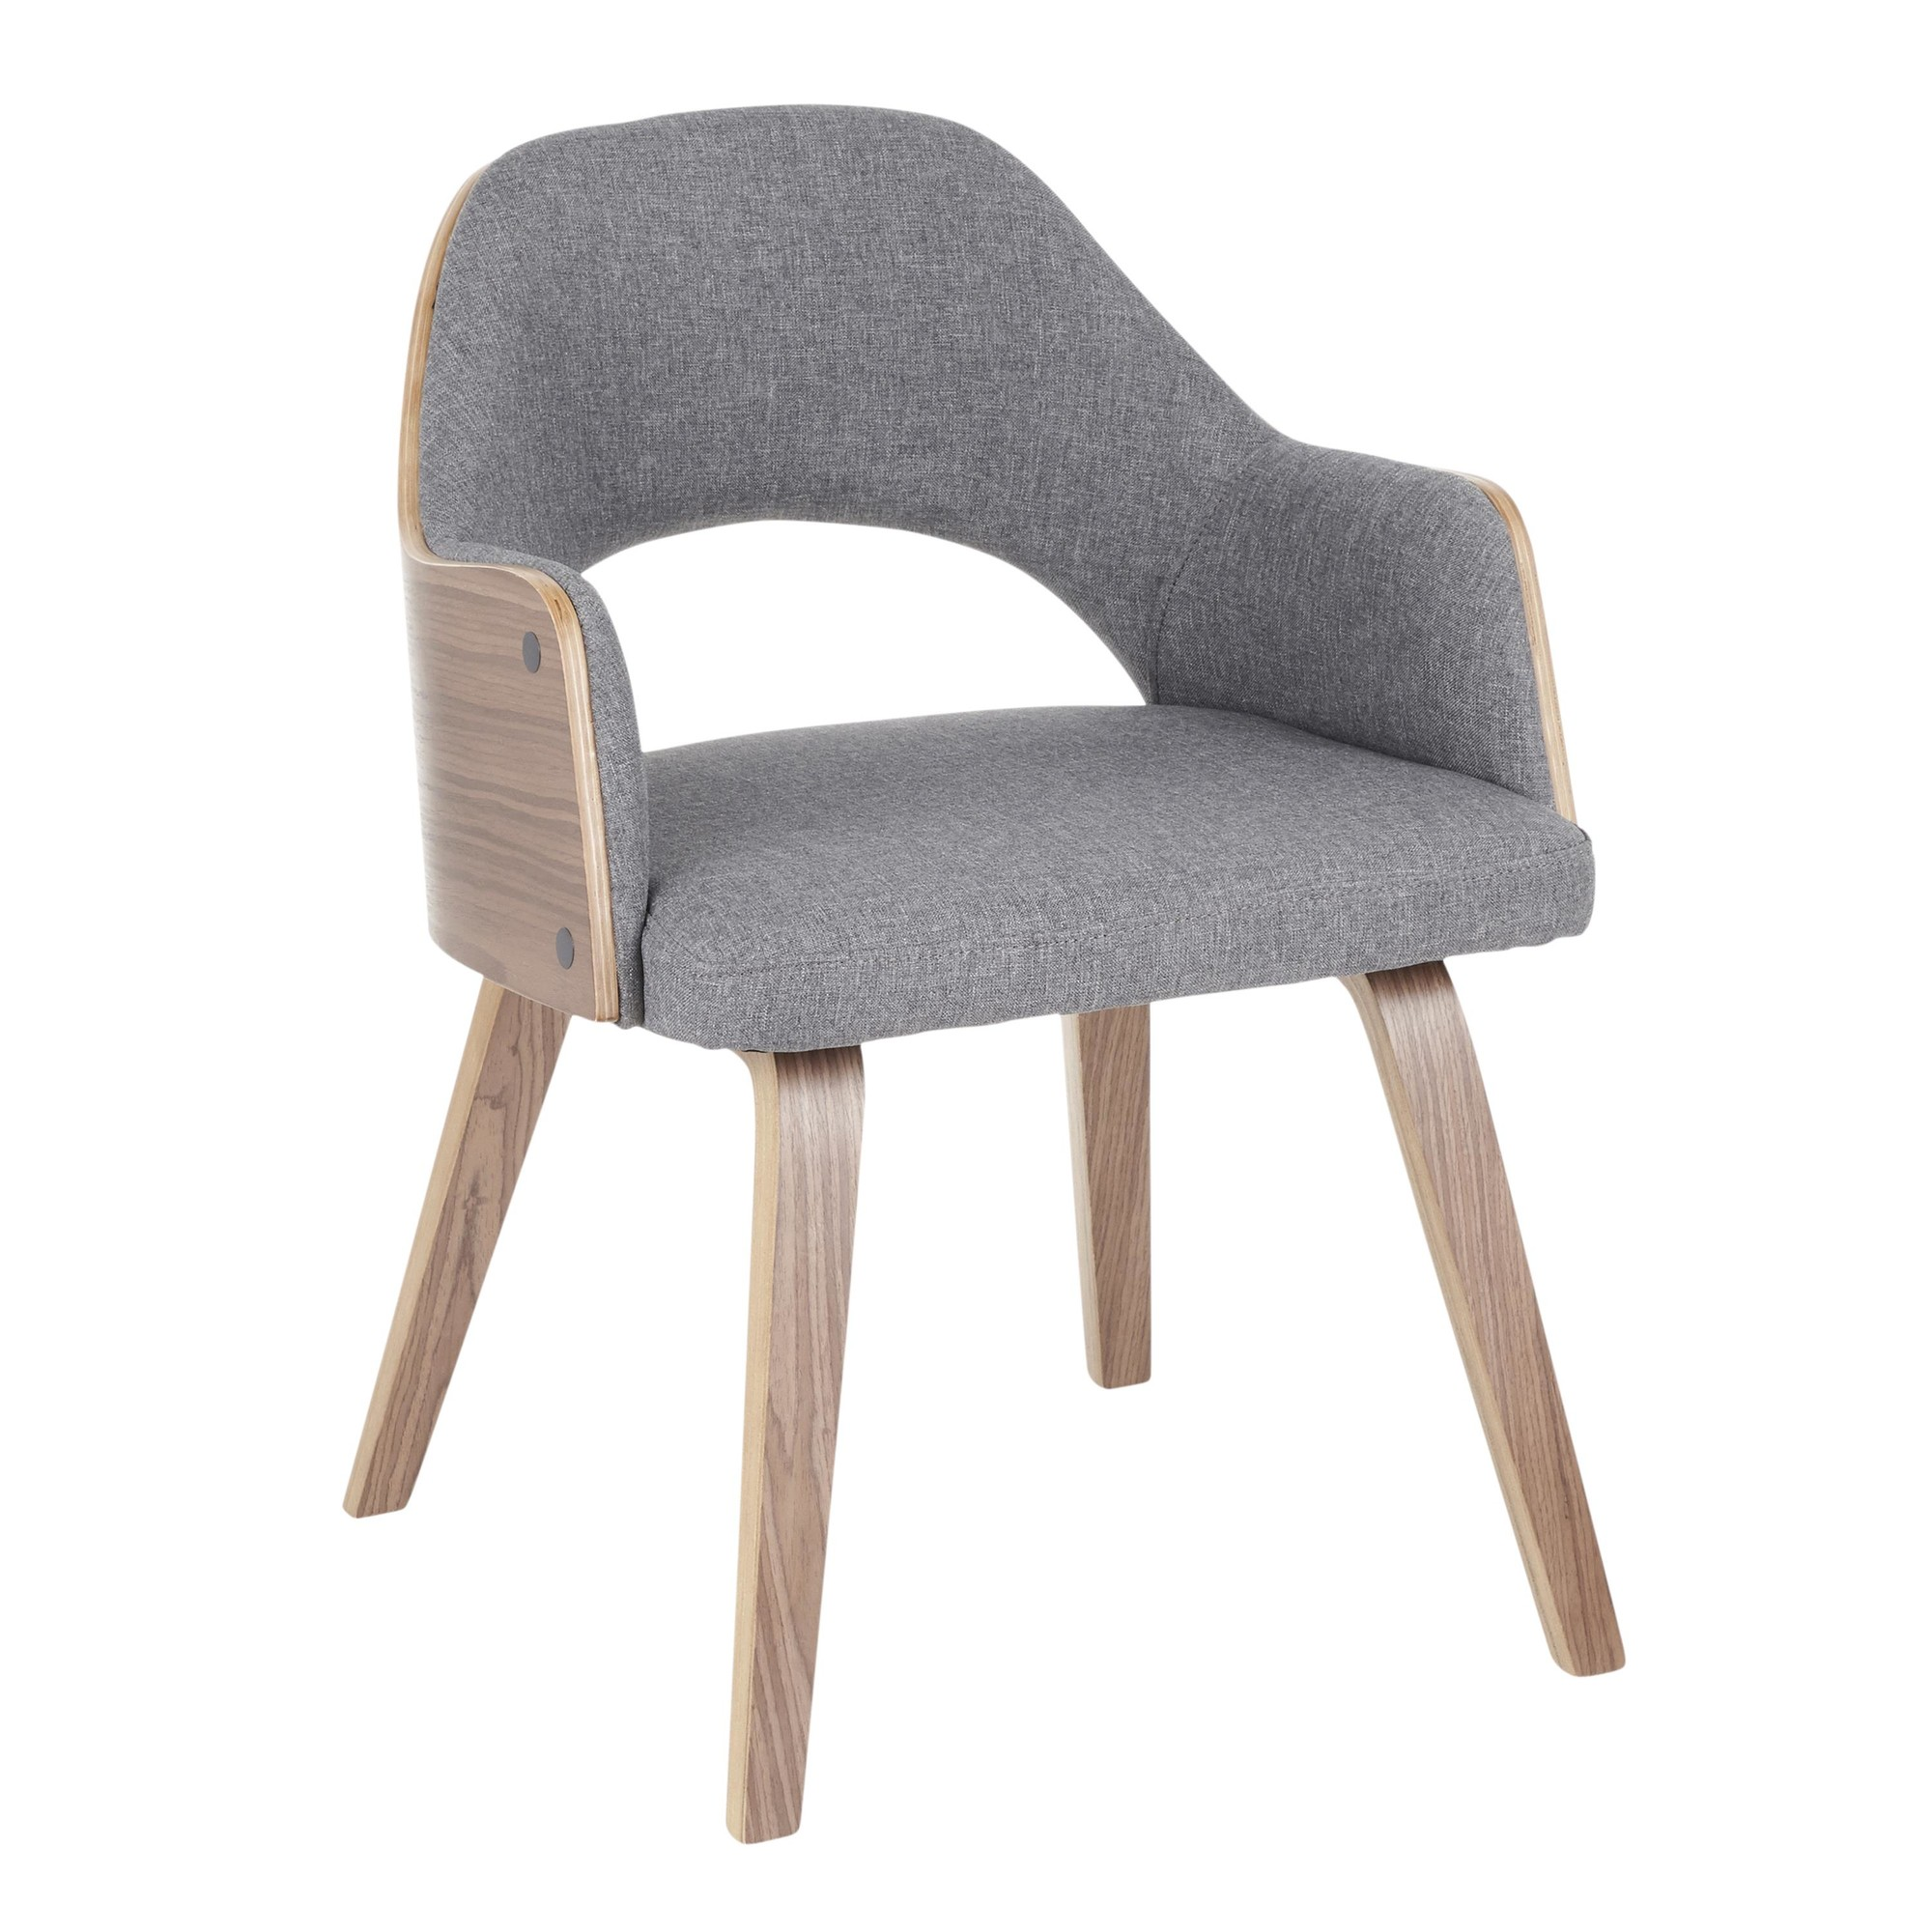 Miraculous Rollo Dining Chair Set Of 2 Lumisource Stylish Decor Ncnpc Chair Design For Home Ncnpcorg